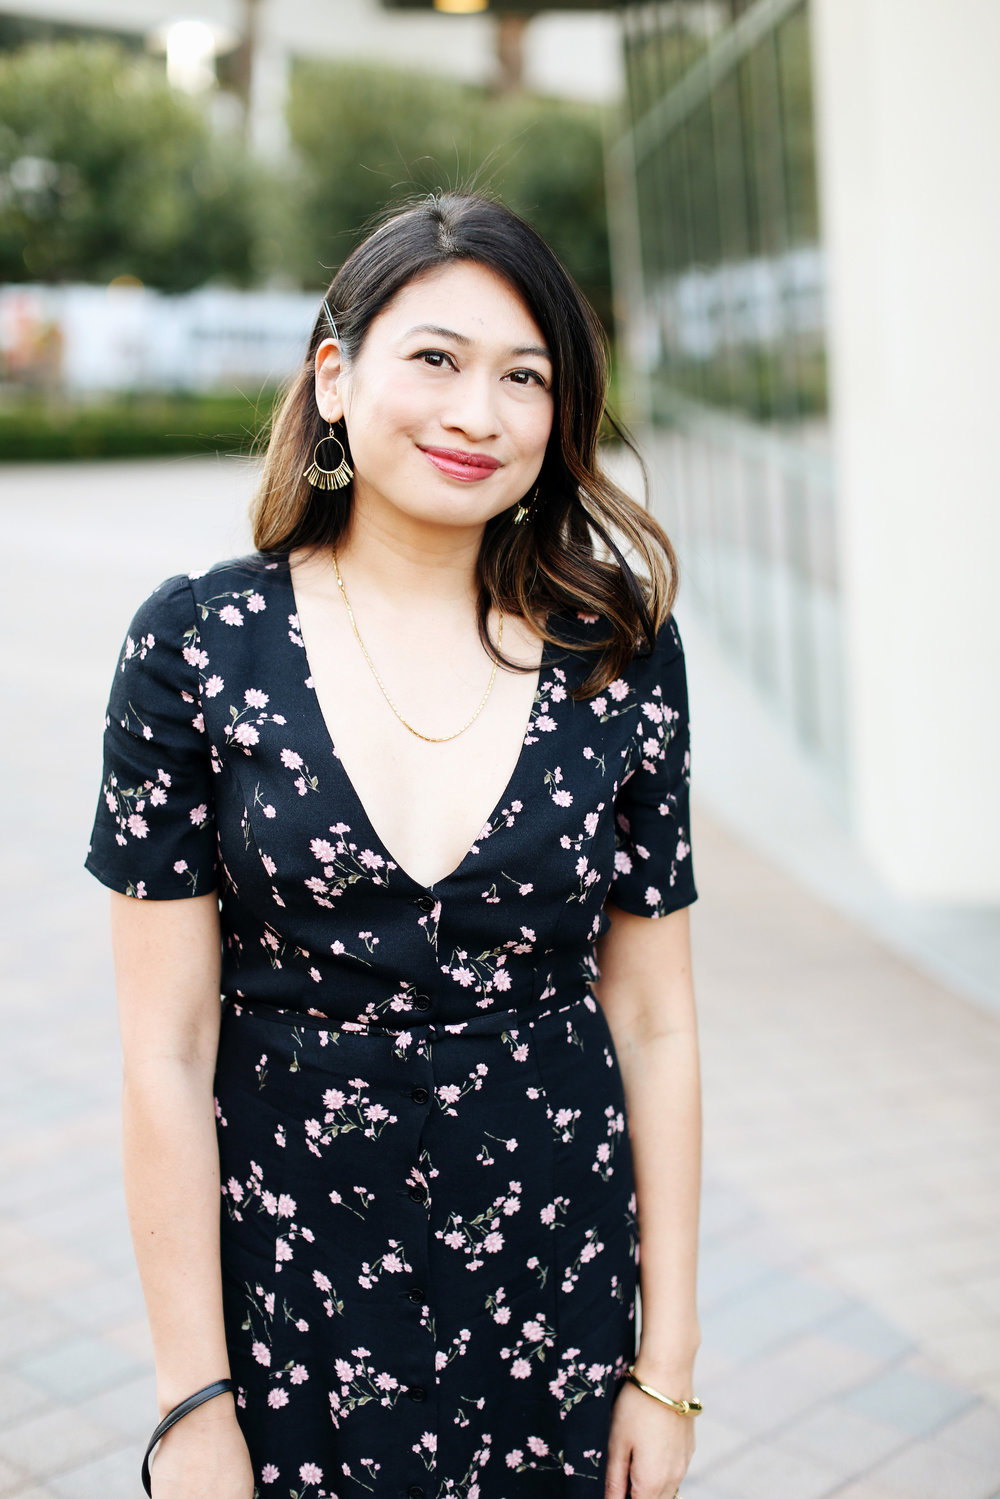 Date night dress | A Week Of Polished & Professional Outfits With Sustainable Lifestyle Blogger Jonilyn Brown on The Good Trade